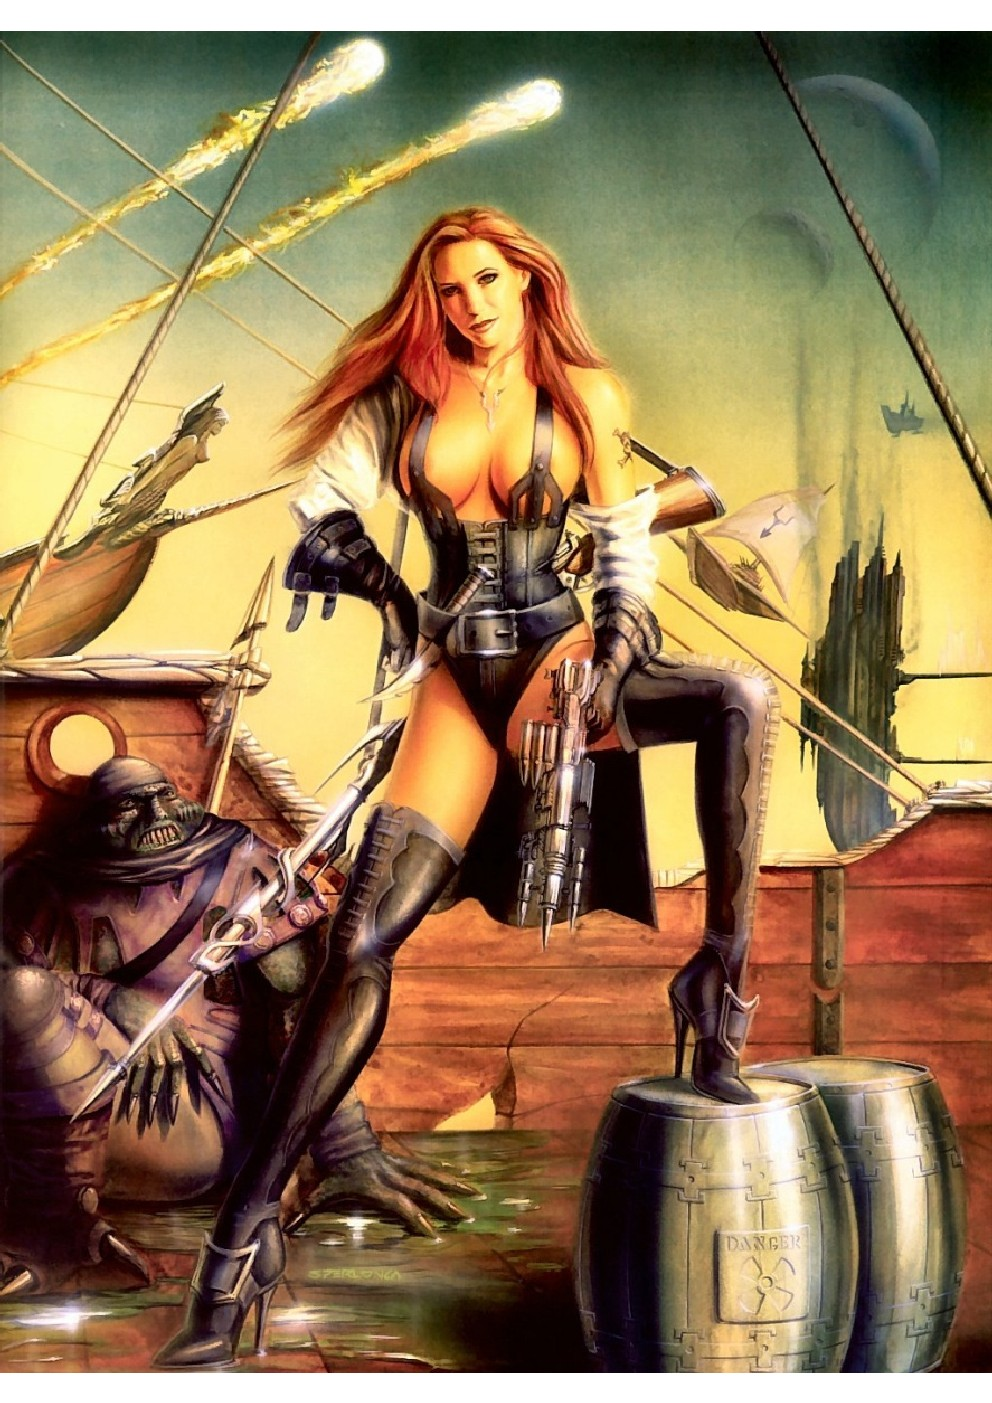 Erotic pirate woman anime video